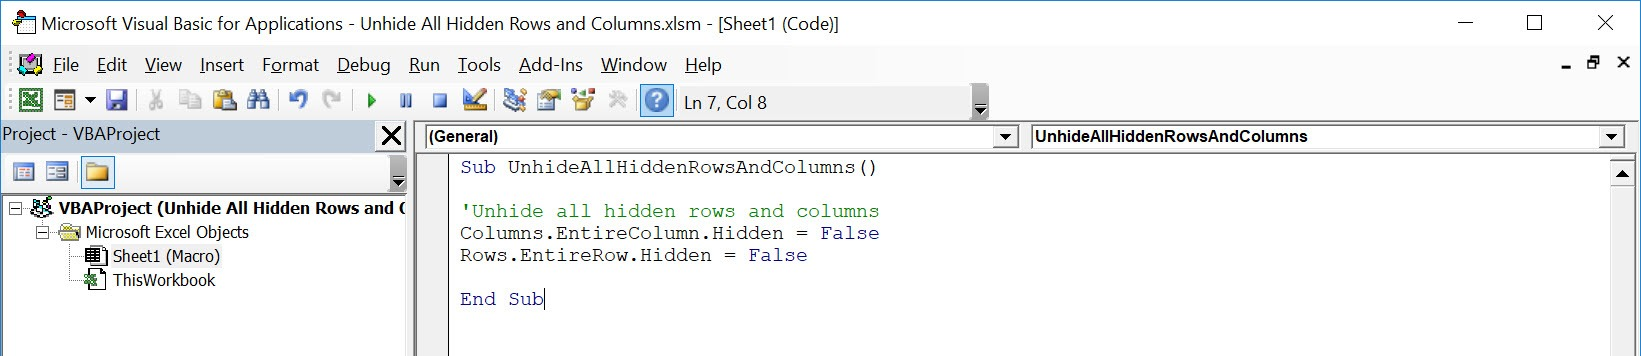 Unhide All Hidden Rows and Columns Using Macros In Excel   MyExcelOnline